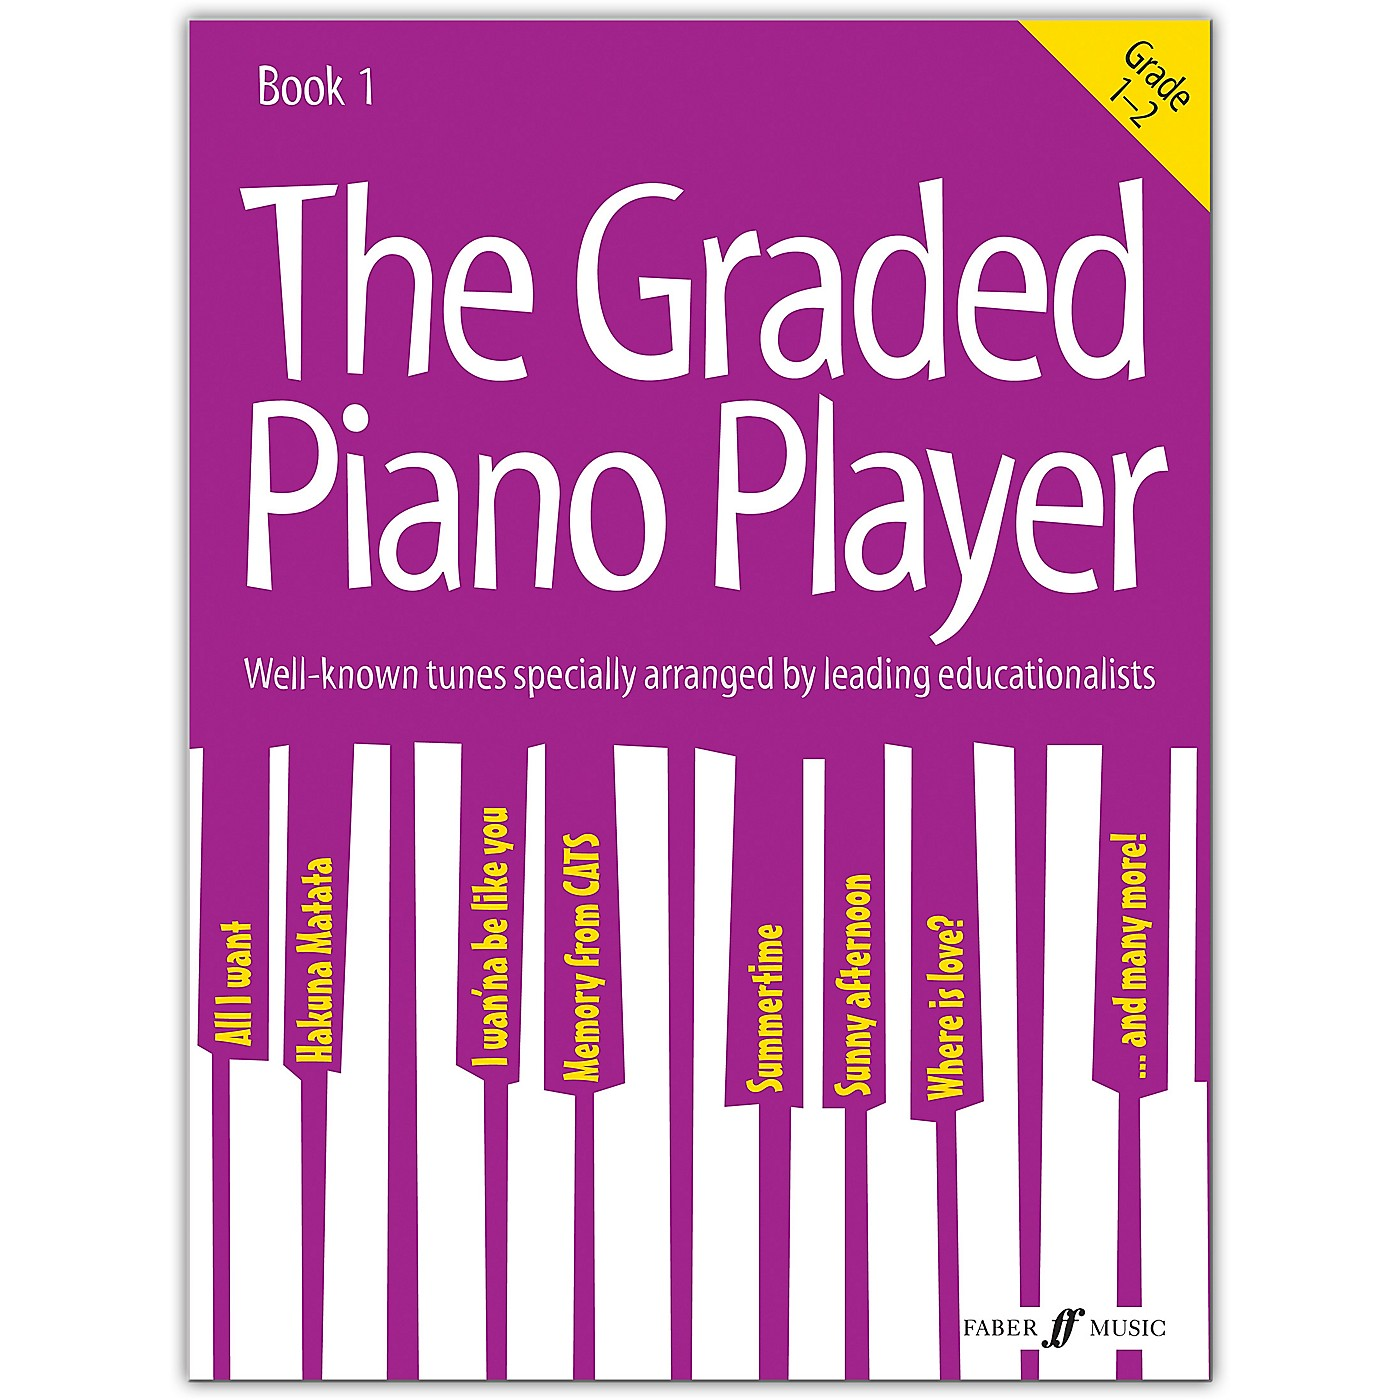 Faber Music LTD The Graded Piano Player, Book 1 (Grades 1--2) thumbnail